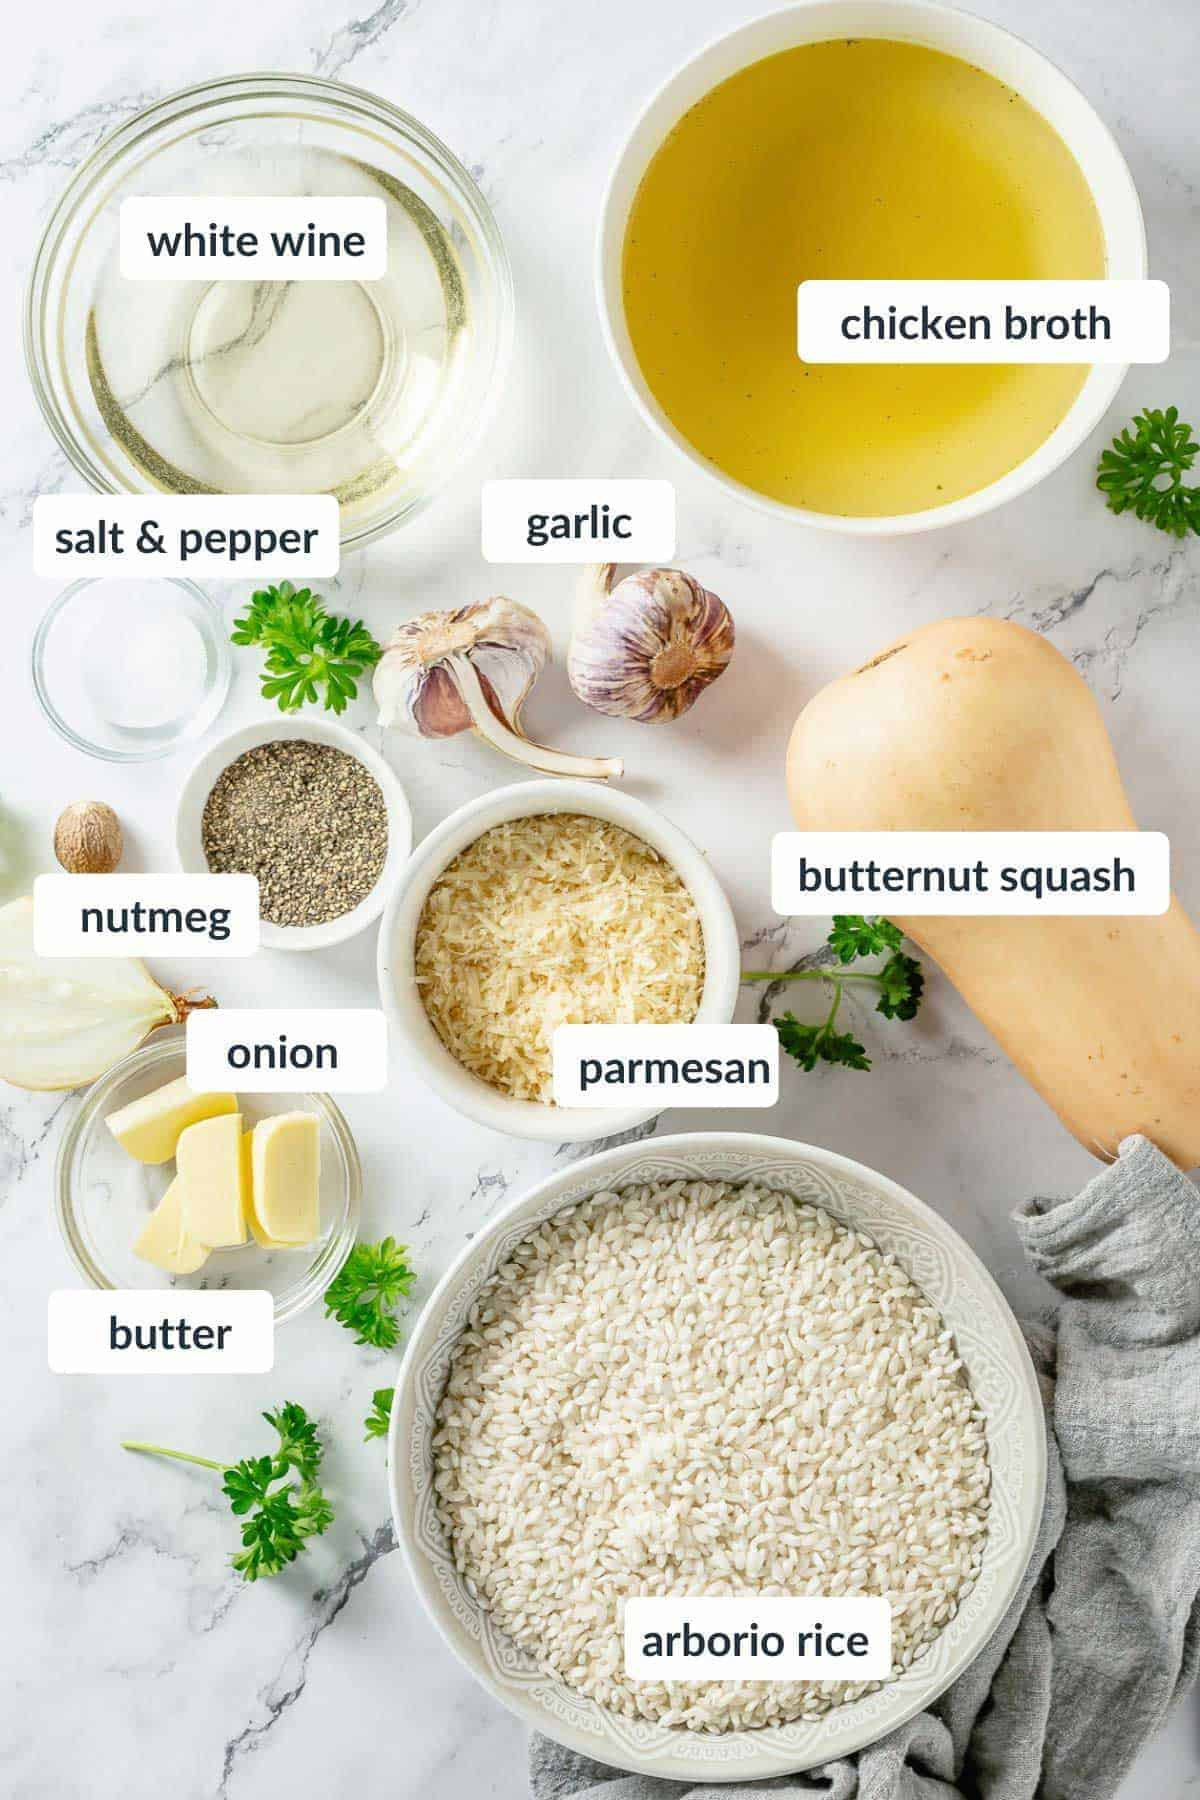 squahs risotto ingredients flatlay shot over marble background